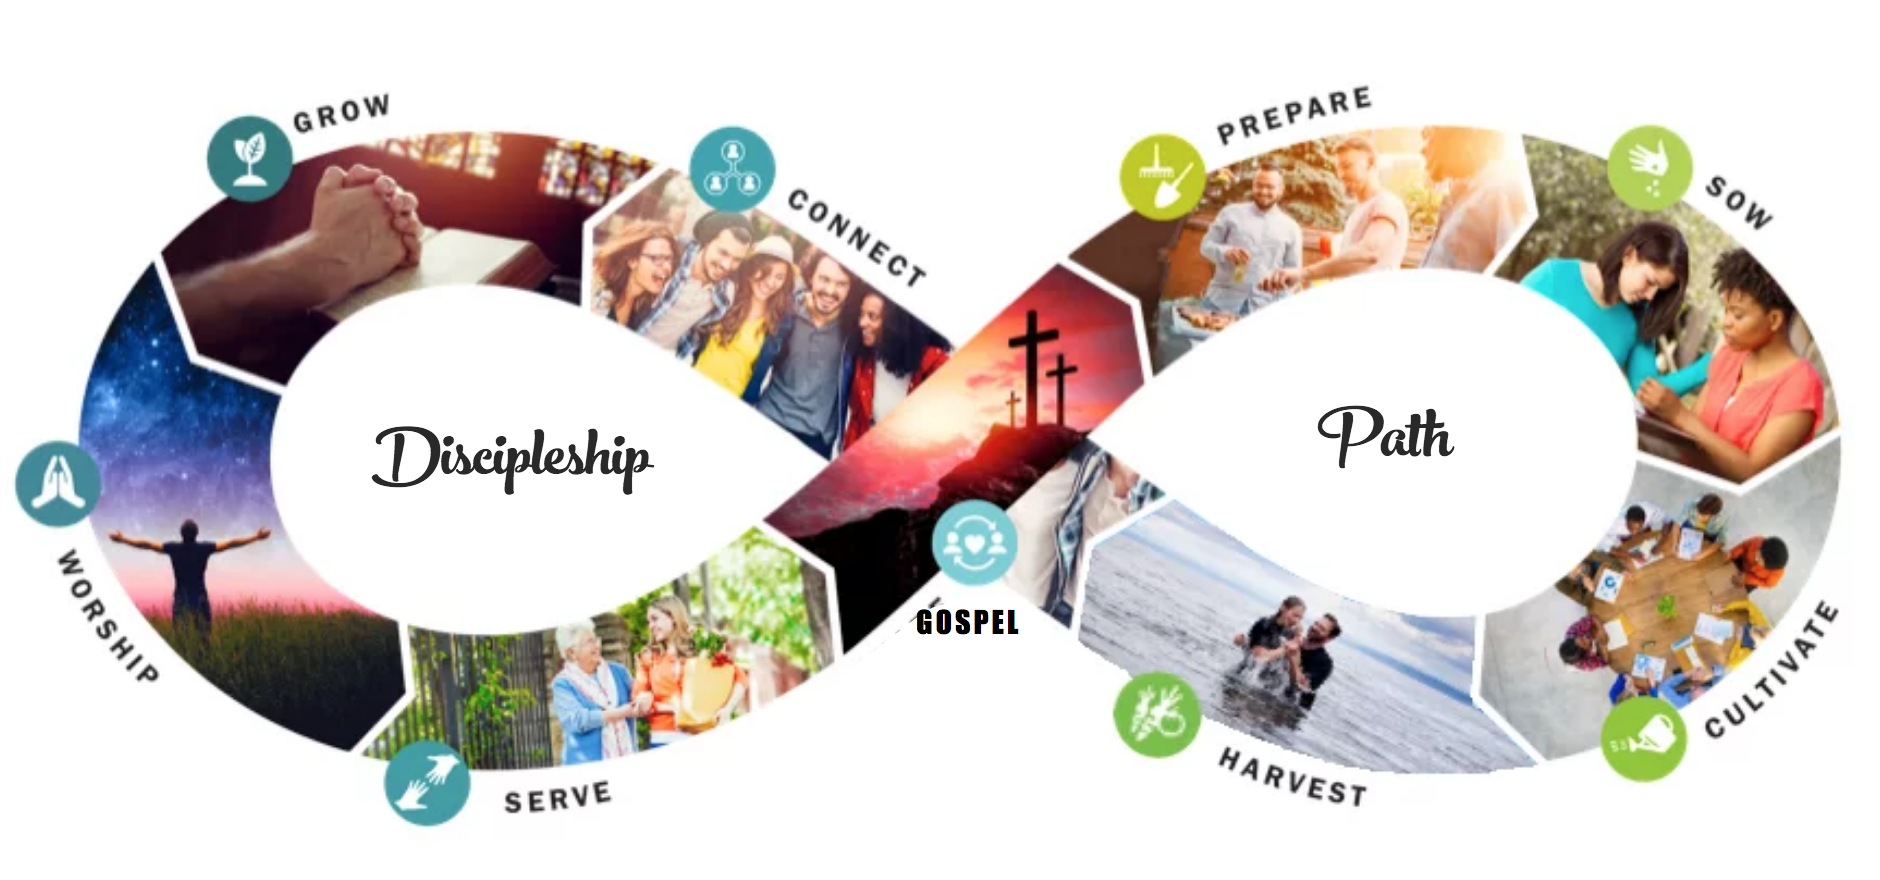 True North Discipleship Path - To be walked through with a Guide - Link Here: True North Path